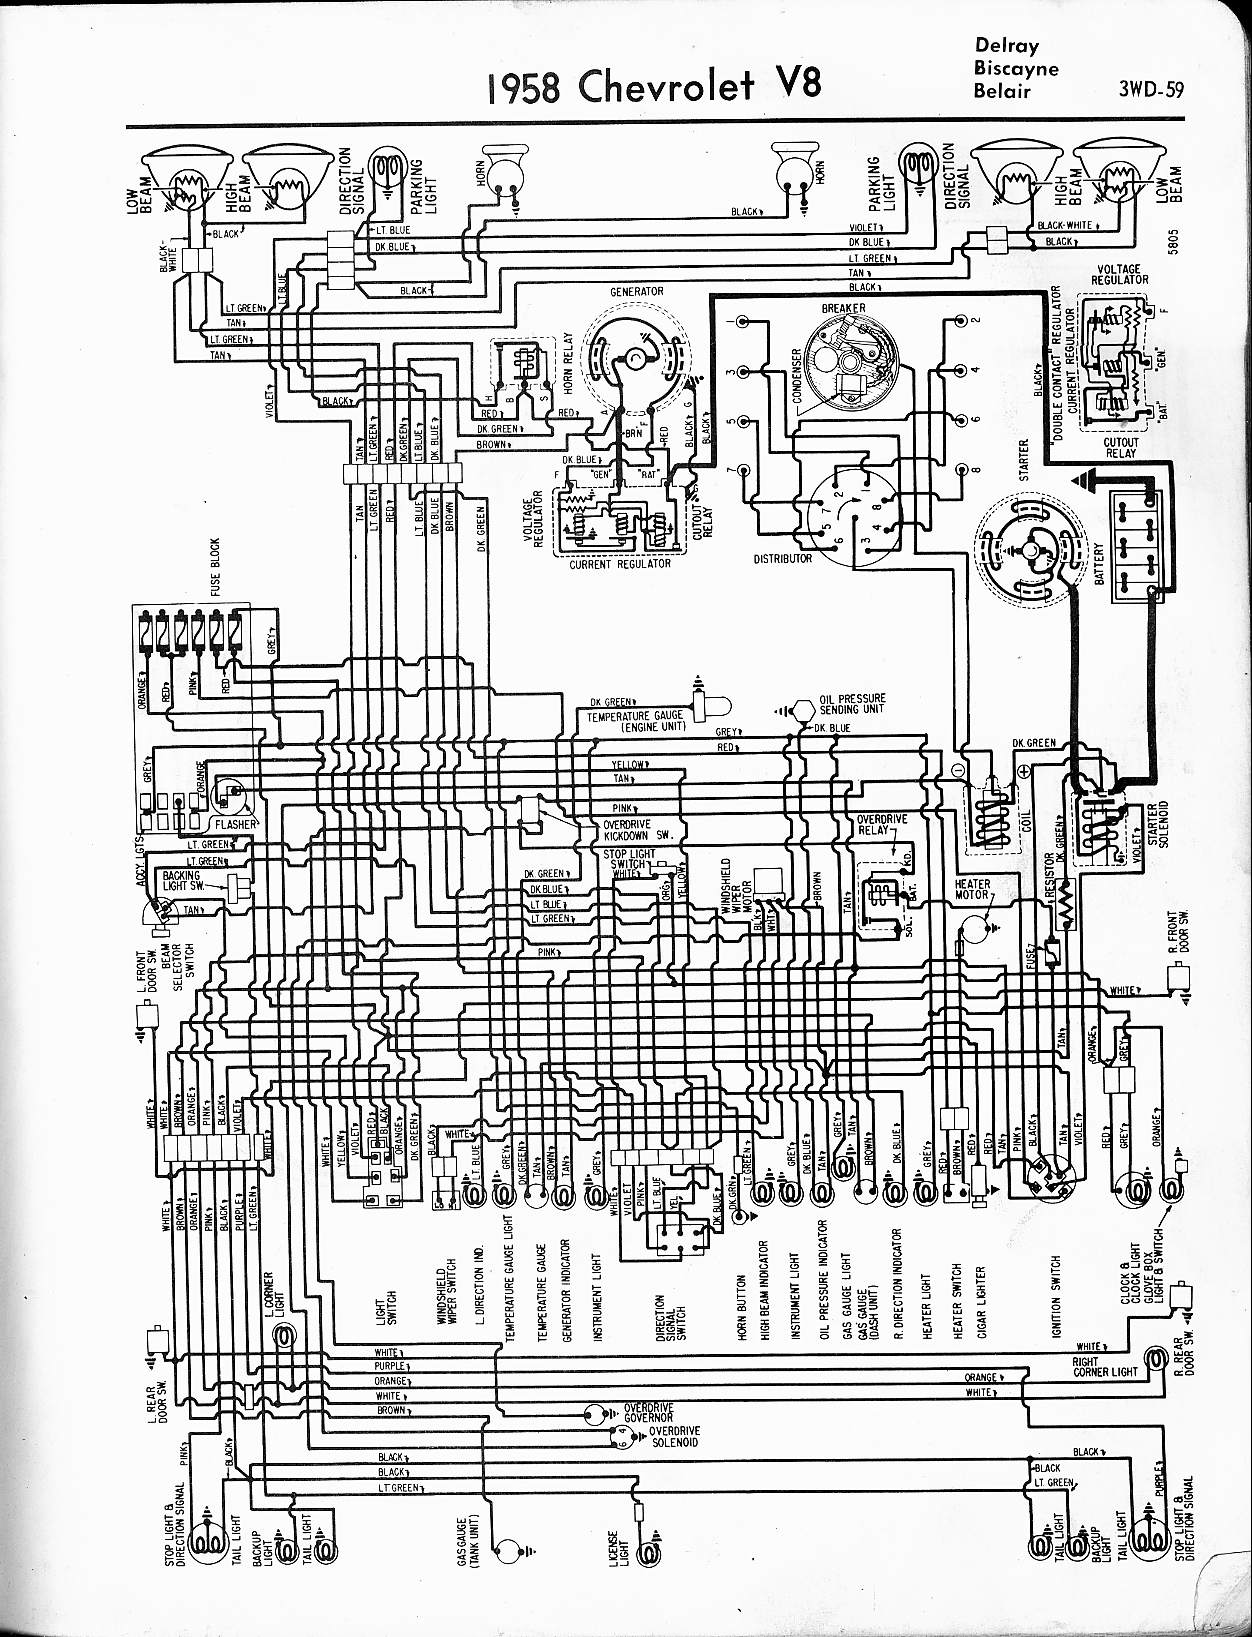 MWireChev58_3WD 059 chevy wiring diagrams chevy radio wiring \u2022 wiring diagrams j 65 chevy wiring harness at suagrazia.org